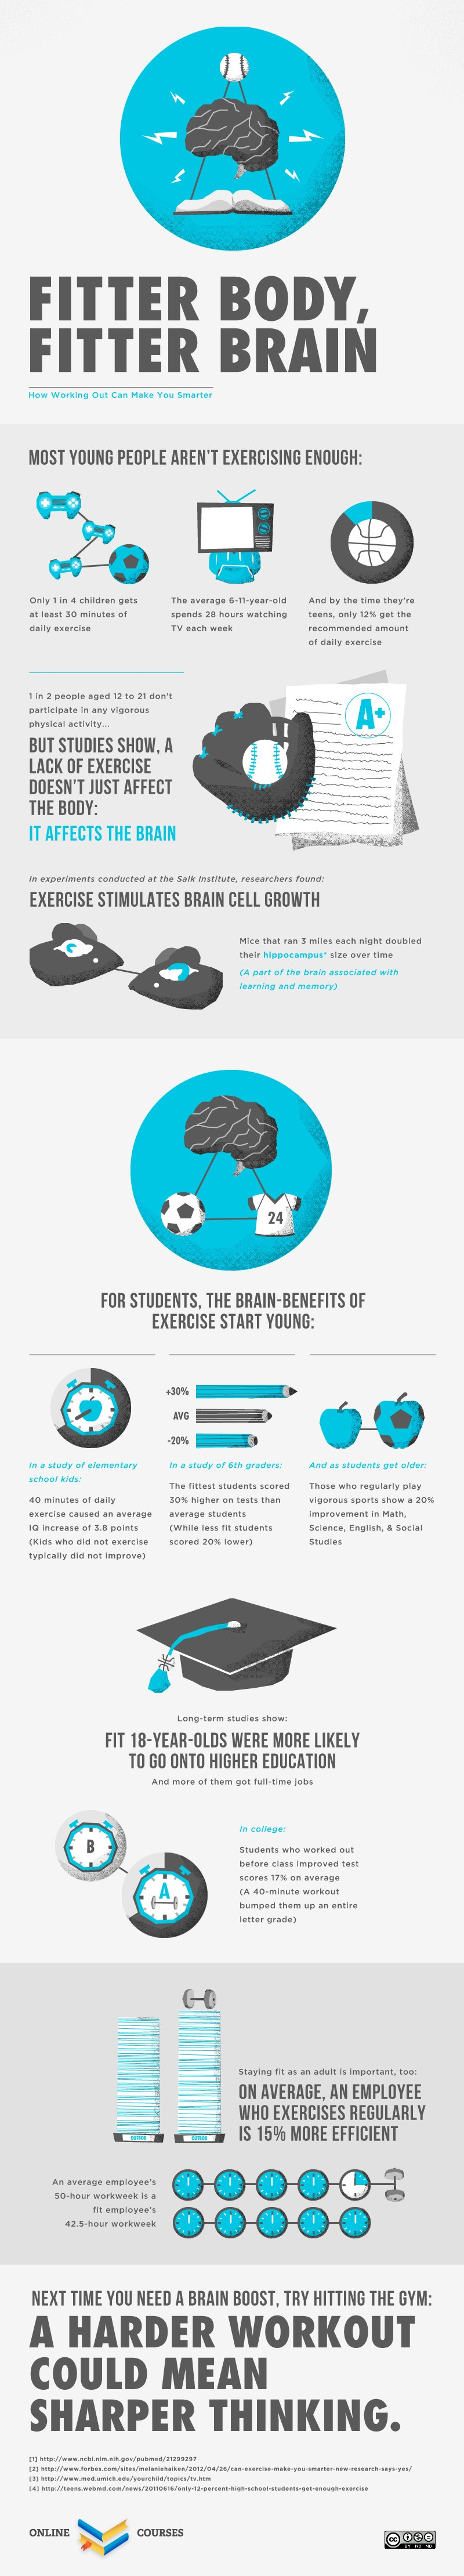 Fitter Body Fitter Brain InfoGraph